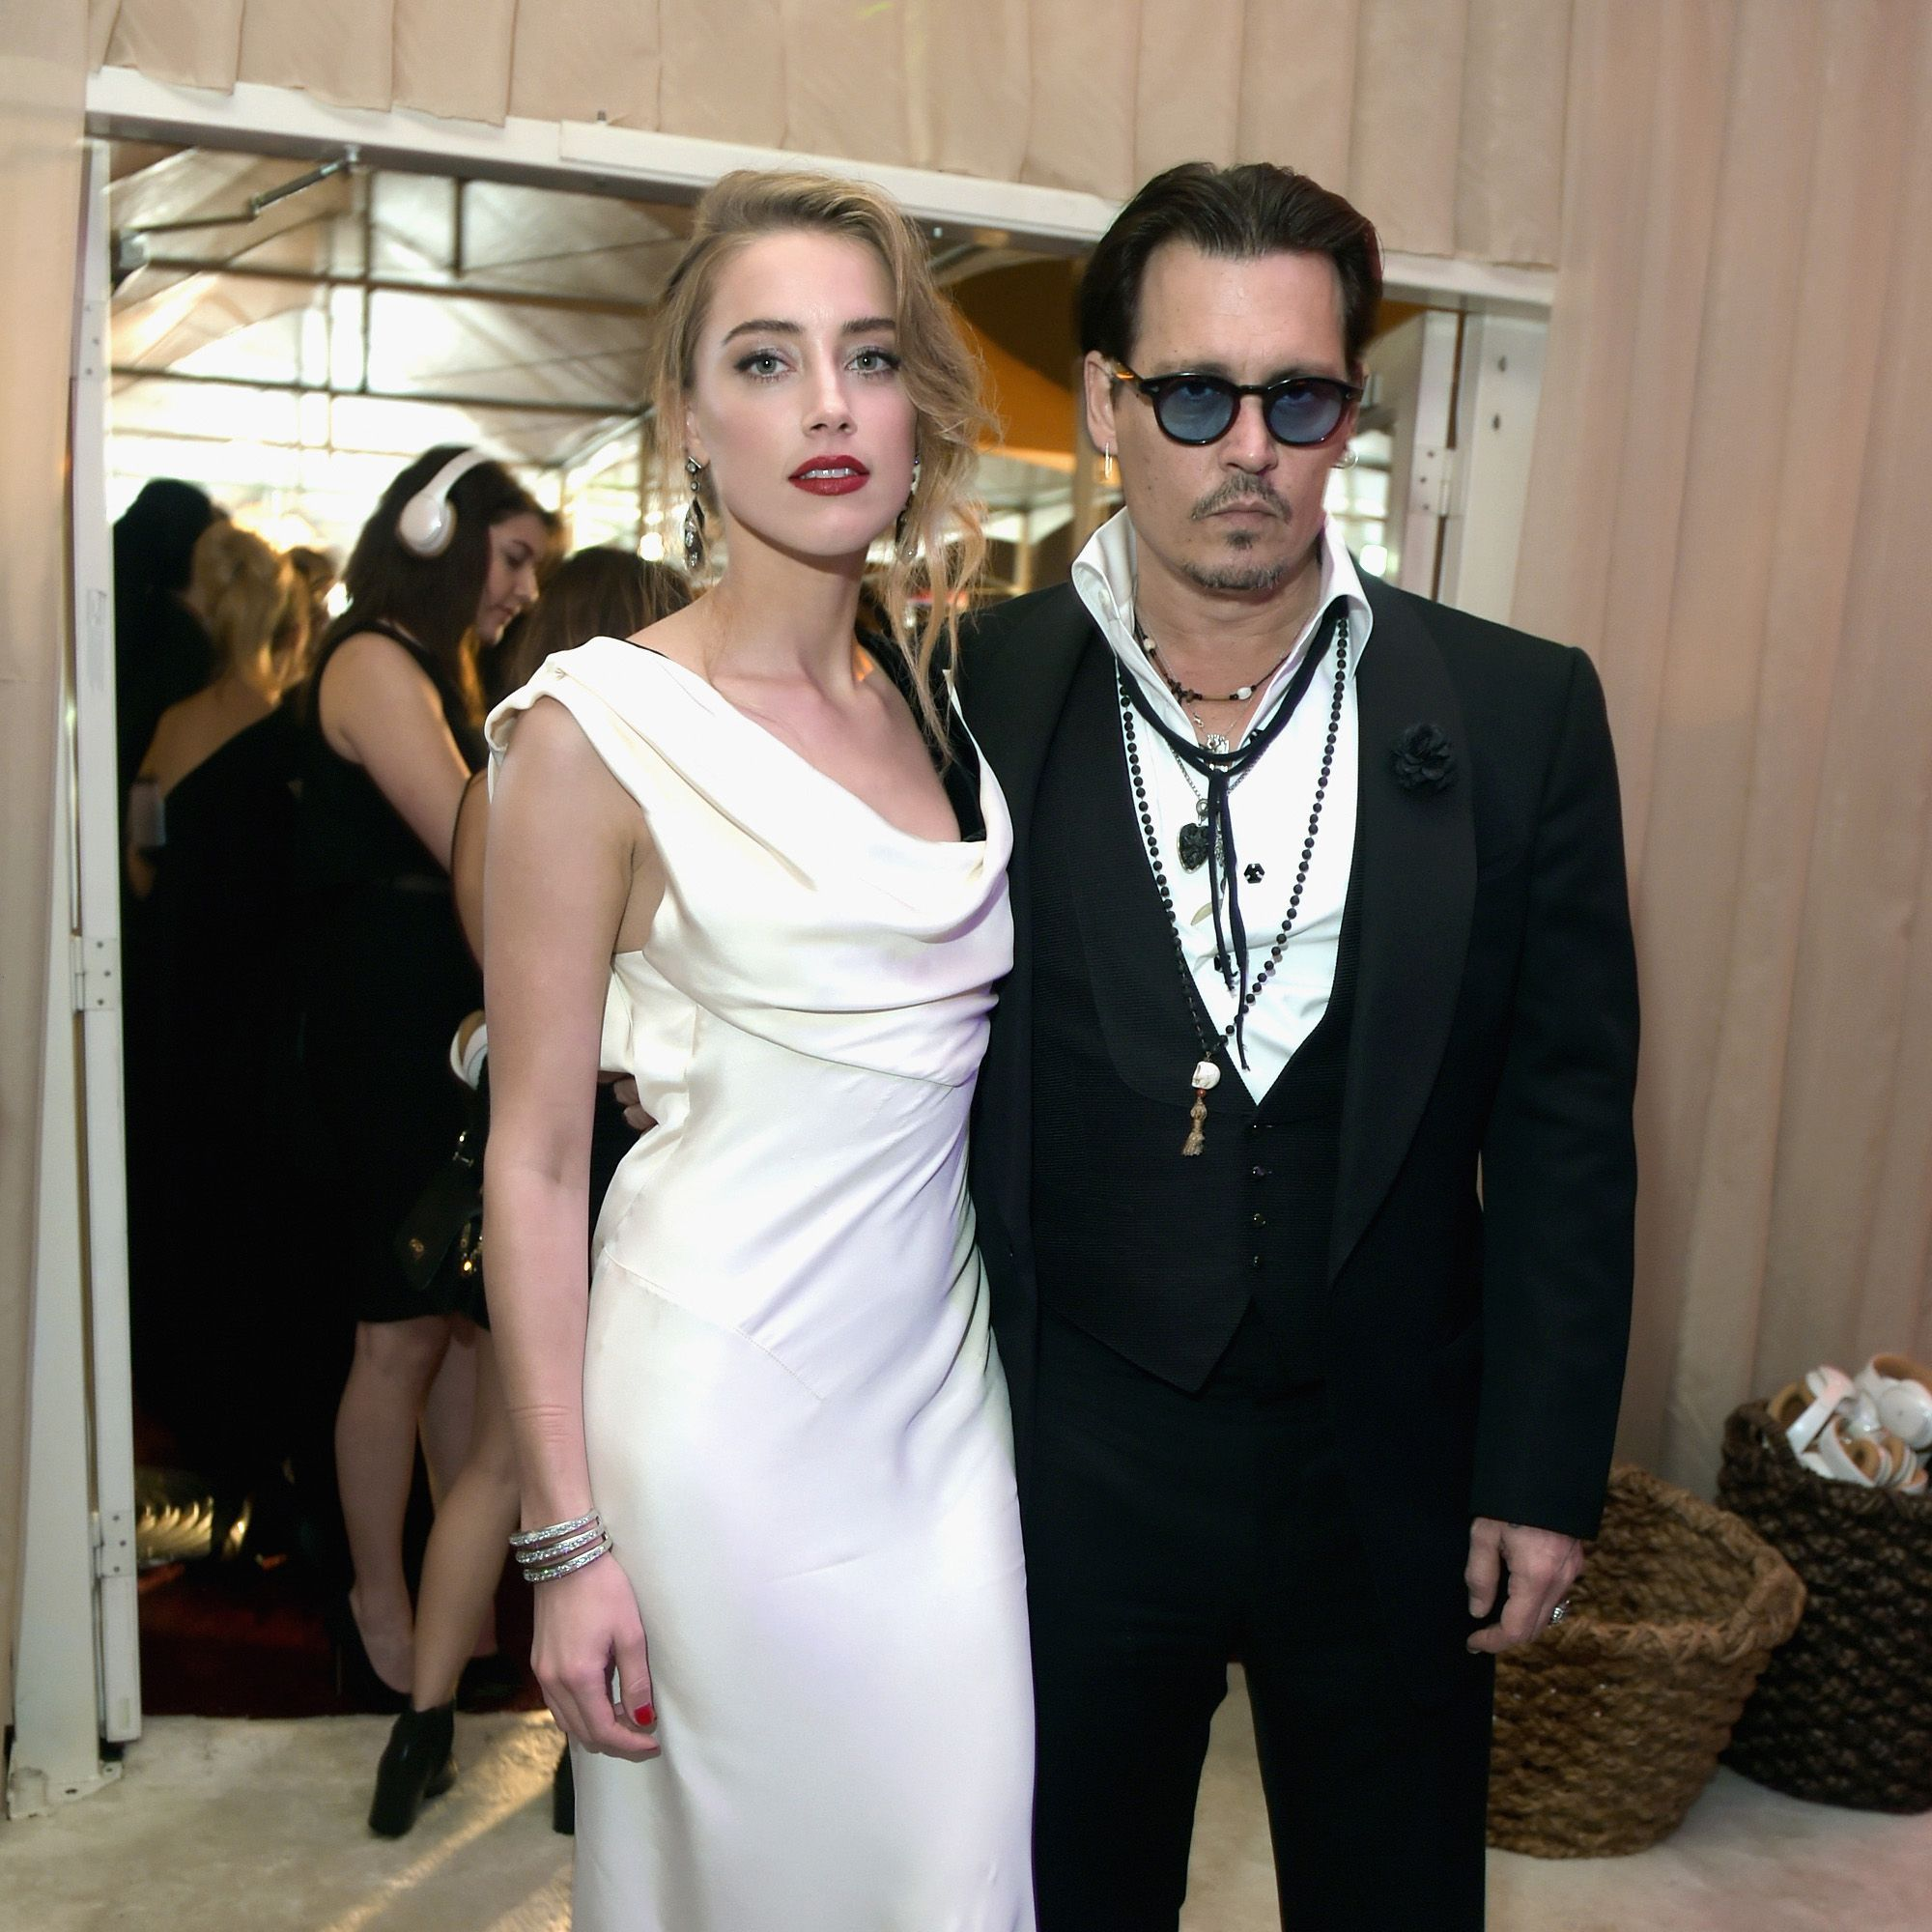 "<p>After just one year of marriage, <a href=""http://www.harpersbazaar.com/celebrity/latest/a15808/amber-heard-johnny-depp-divorce/"" target=""_blank"" data-tracking-id=""recirc-text-link"">Heard filed for divorce</a> from Depp back in May, citing ""irreconcilable differences."" One day later, the actress <a href=""http://www.harpersbazaar.com/celebrity/latest/news/a15837/amber-heard-files-domestic-restraining-order-against-johnny-depp/"" target=""_blank"" data-tracking-id=""recirc-text-link"">filed a domestic violence restraining order</a> against the actor, alleging that he was abusive in their relationship. Following a months-long (and not so friendly) battle, Heard dismissed her domestic violence restraining order and Depp <a href=""http://www.harpersbazaar.com/celebrity/latest/news/a17201/johnny-depp-amber-heard-divorce-settled/"" target=""_blank"" data-tracking-id=""recirc-text-link"">paid the actress $7 million</a> in a settlement—all of which she donated to charity. </p>"